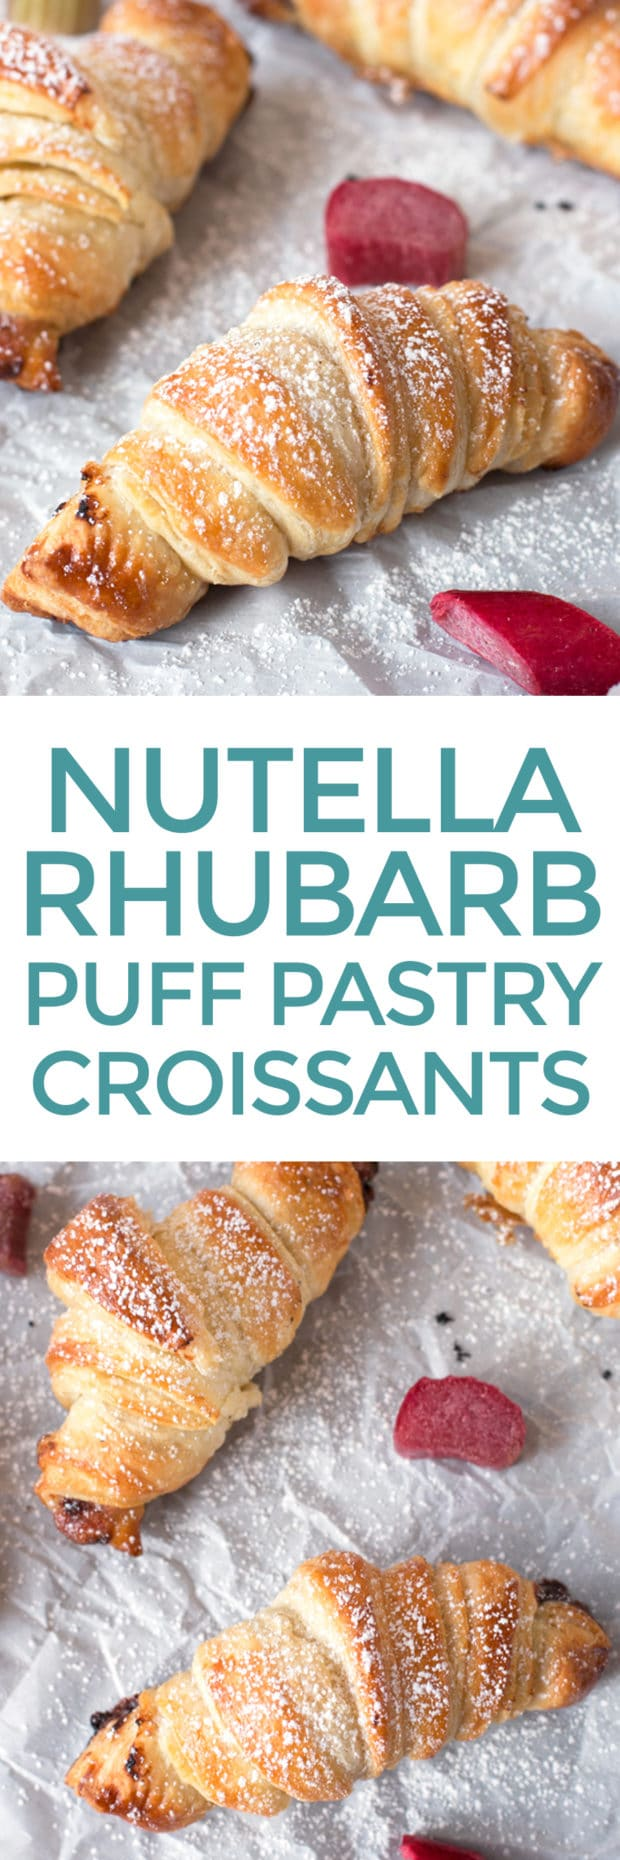 Nutella Rhubarb Puff Pastry Croissants Cake N Knife